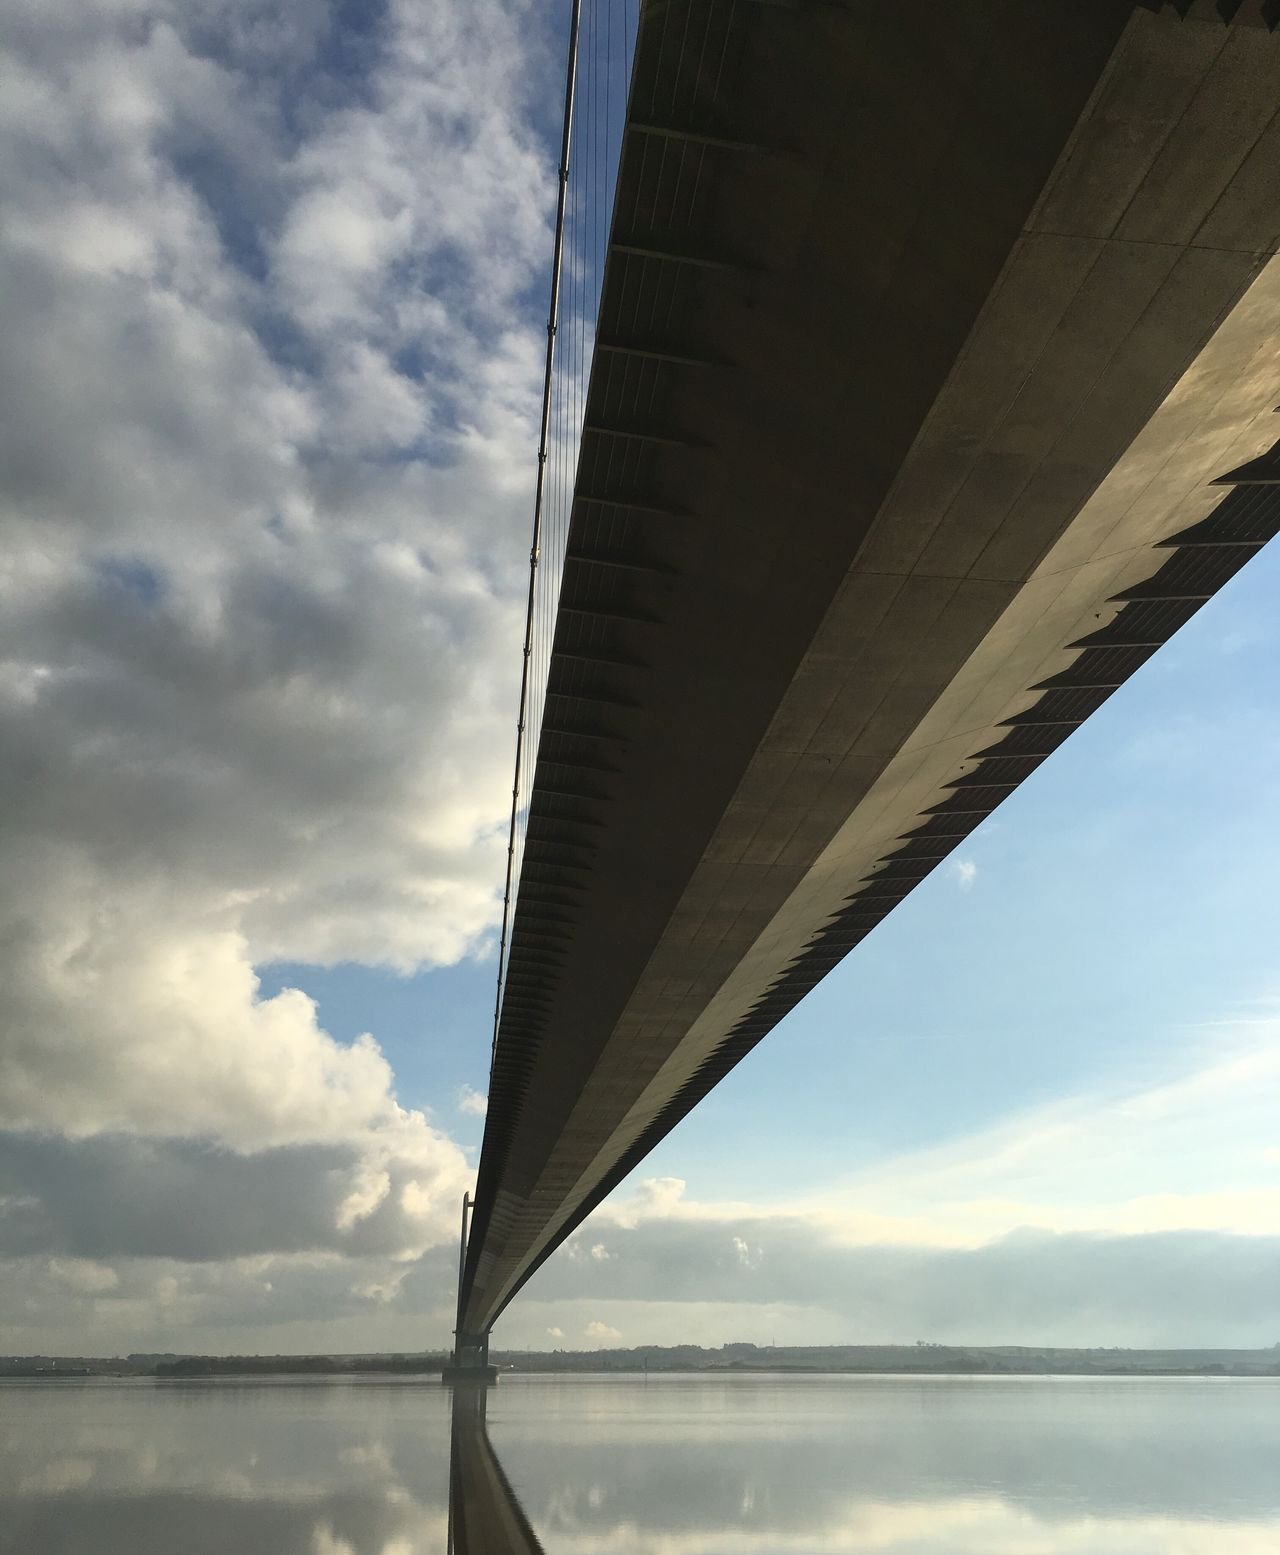 Sky Low Angle View Bridge - Man Made Structure Cloud - Sky Architecture Water Sun Reflection On Water River Humber Hull City Of Culture 2017 Humber Bridge Suspension Bridge Looking Over Water Tranquil Scene Reflection Hull 2017